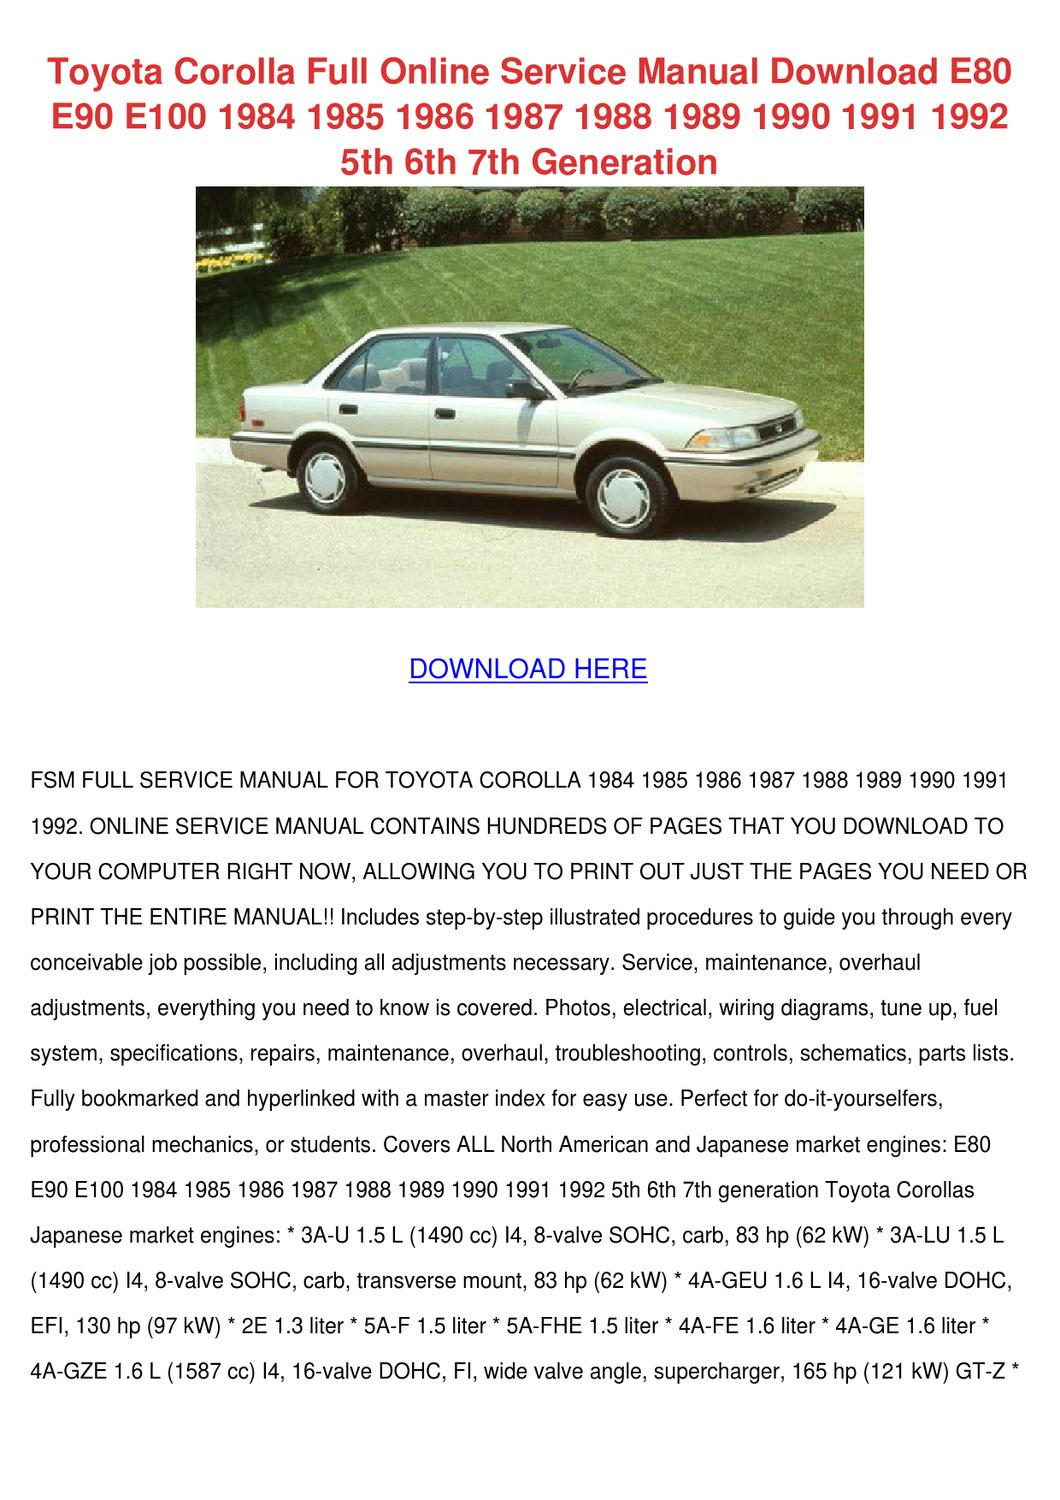 hight resolution of toyota corolla full online service manual dow by willette galbavy issuu